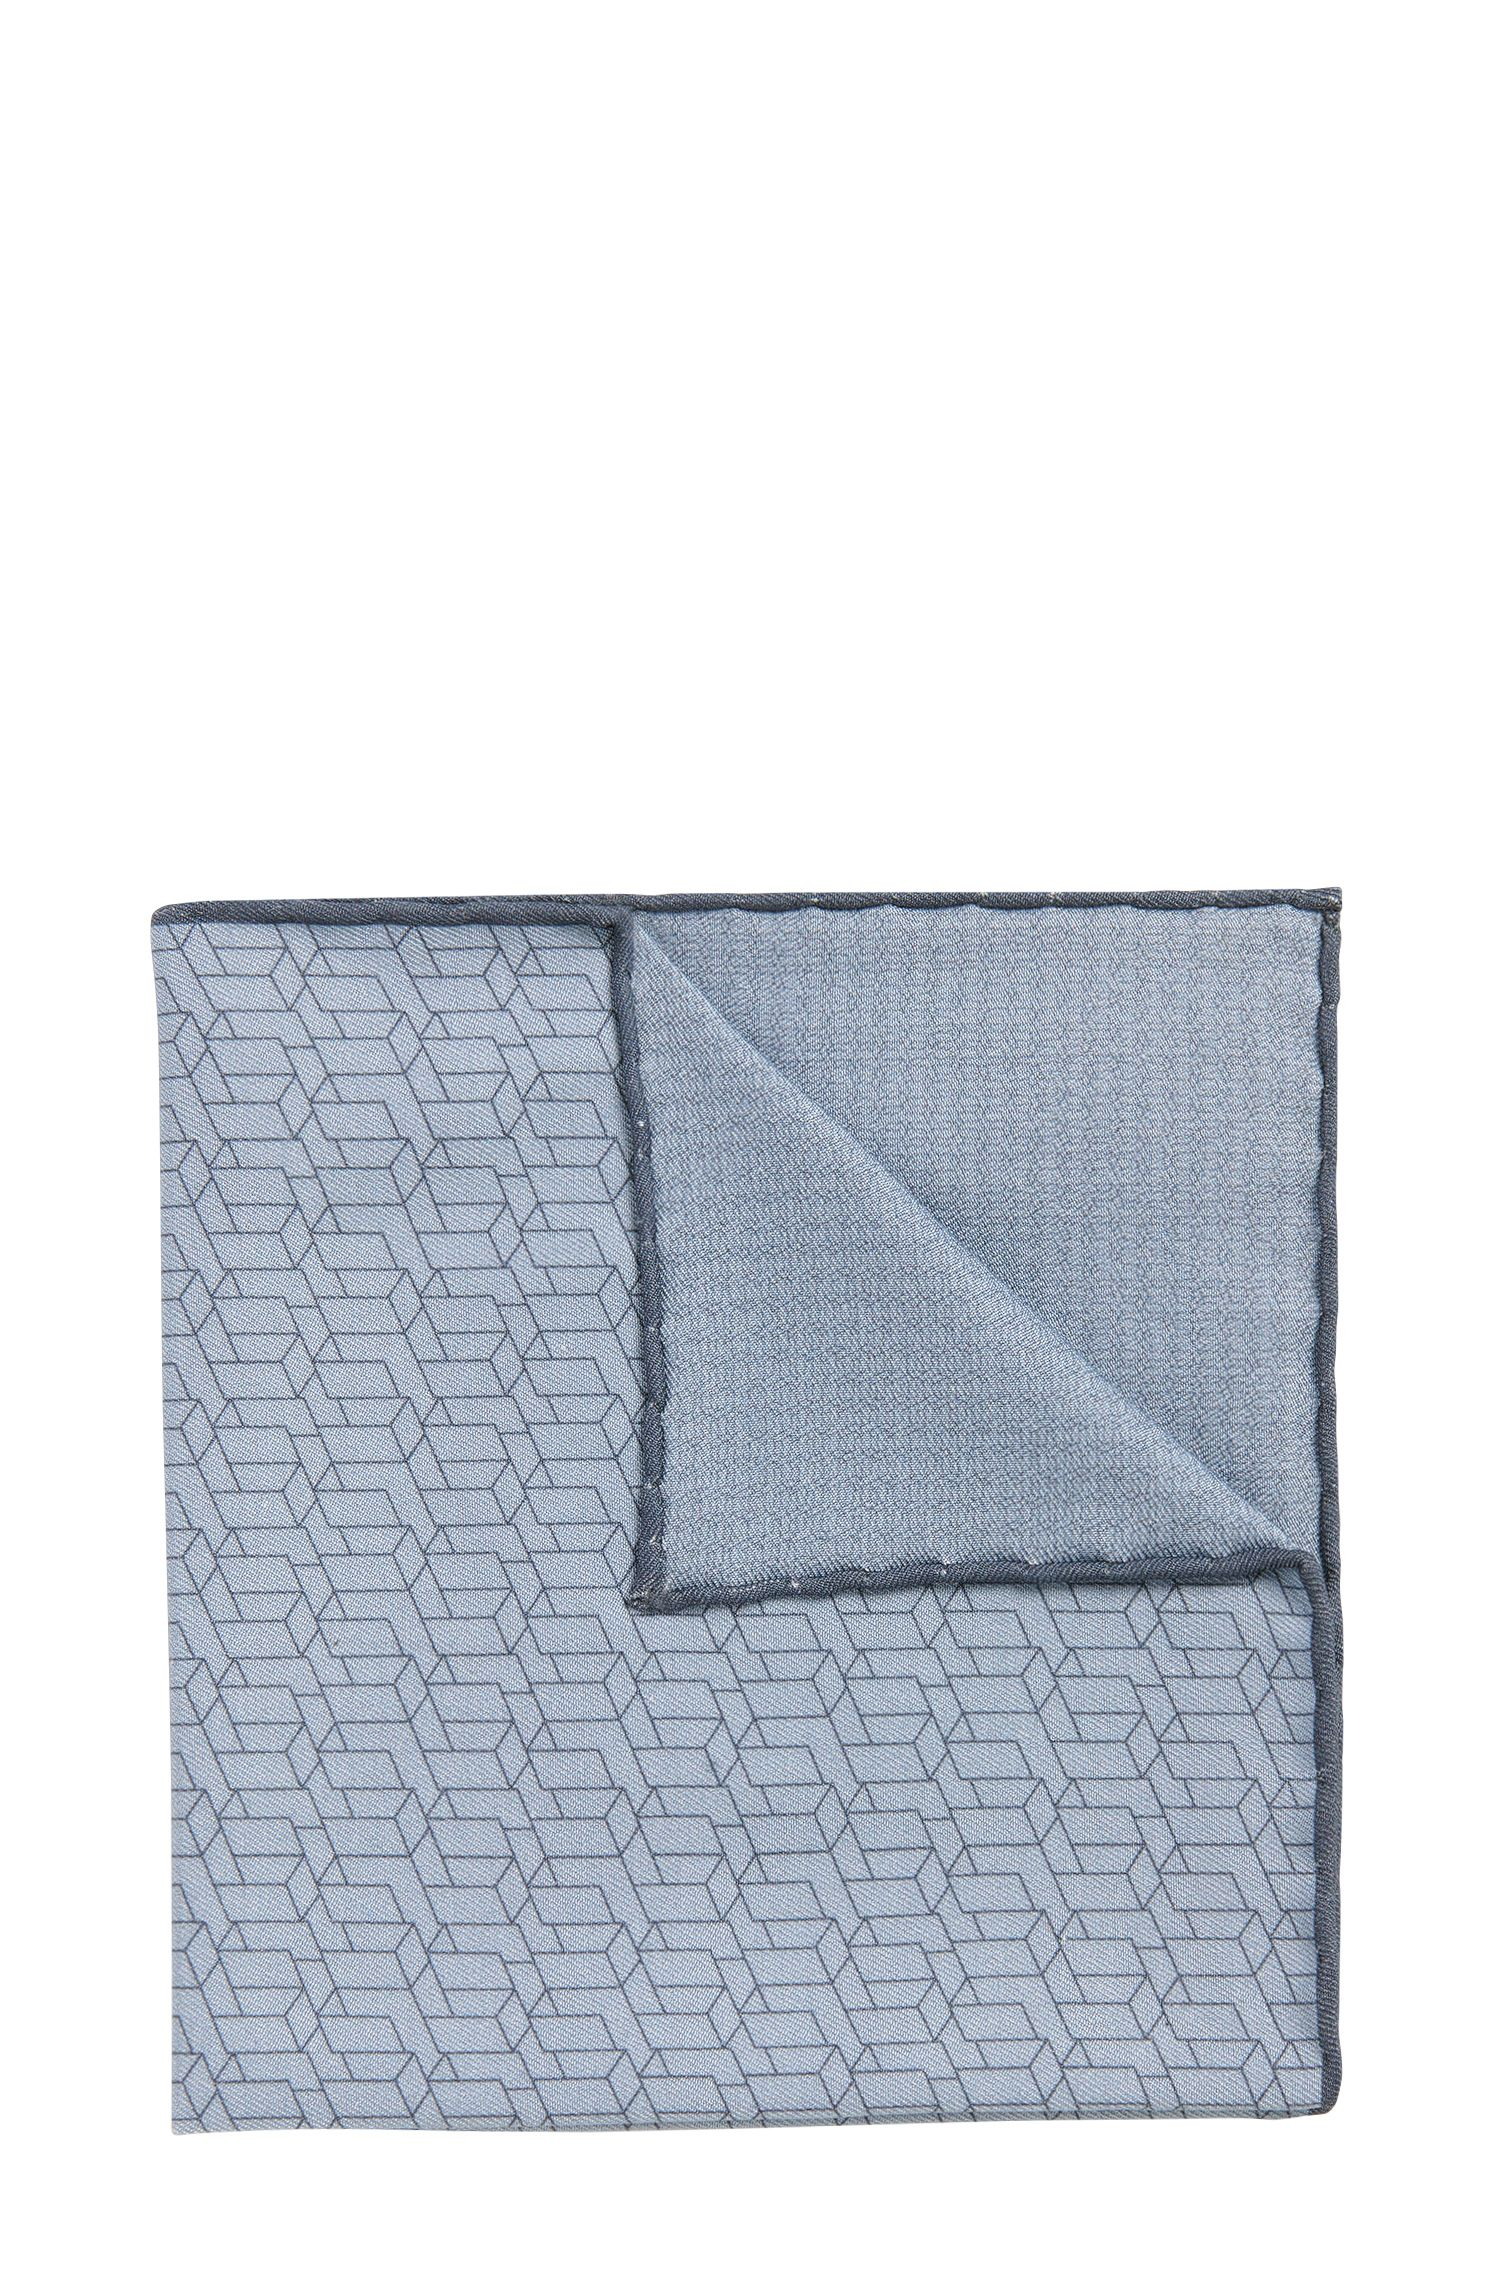 Tailored Einstecktuch aus Seiden-Mix mit Baumwolle: 'T-Pocket sq. cm33x33'